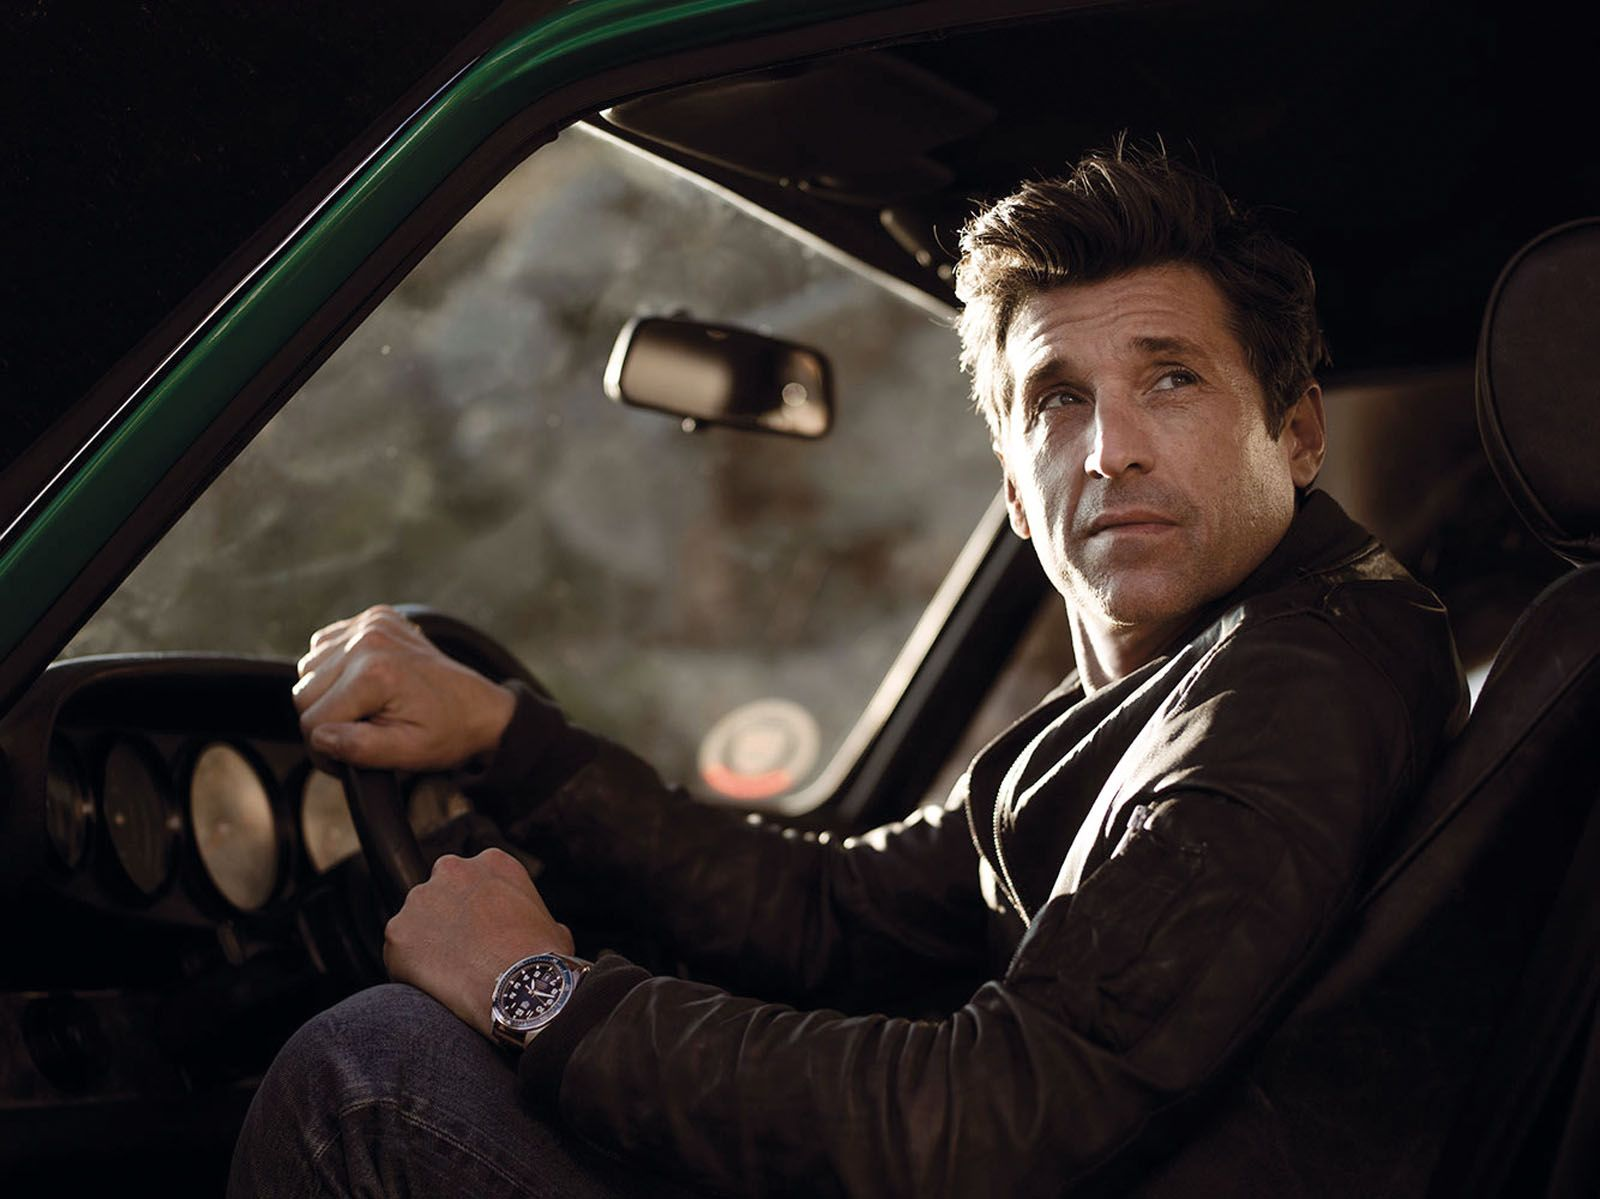 American actor and professional racer Patrick Dempsey, a Tag Heuer friend of the brand, fronts the new Autavia campaign